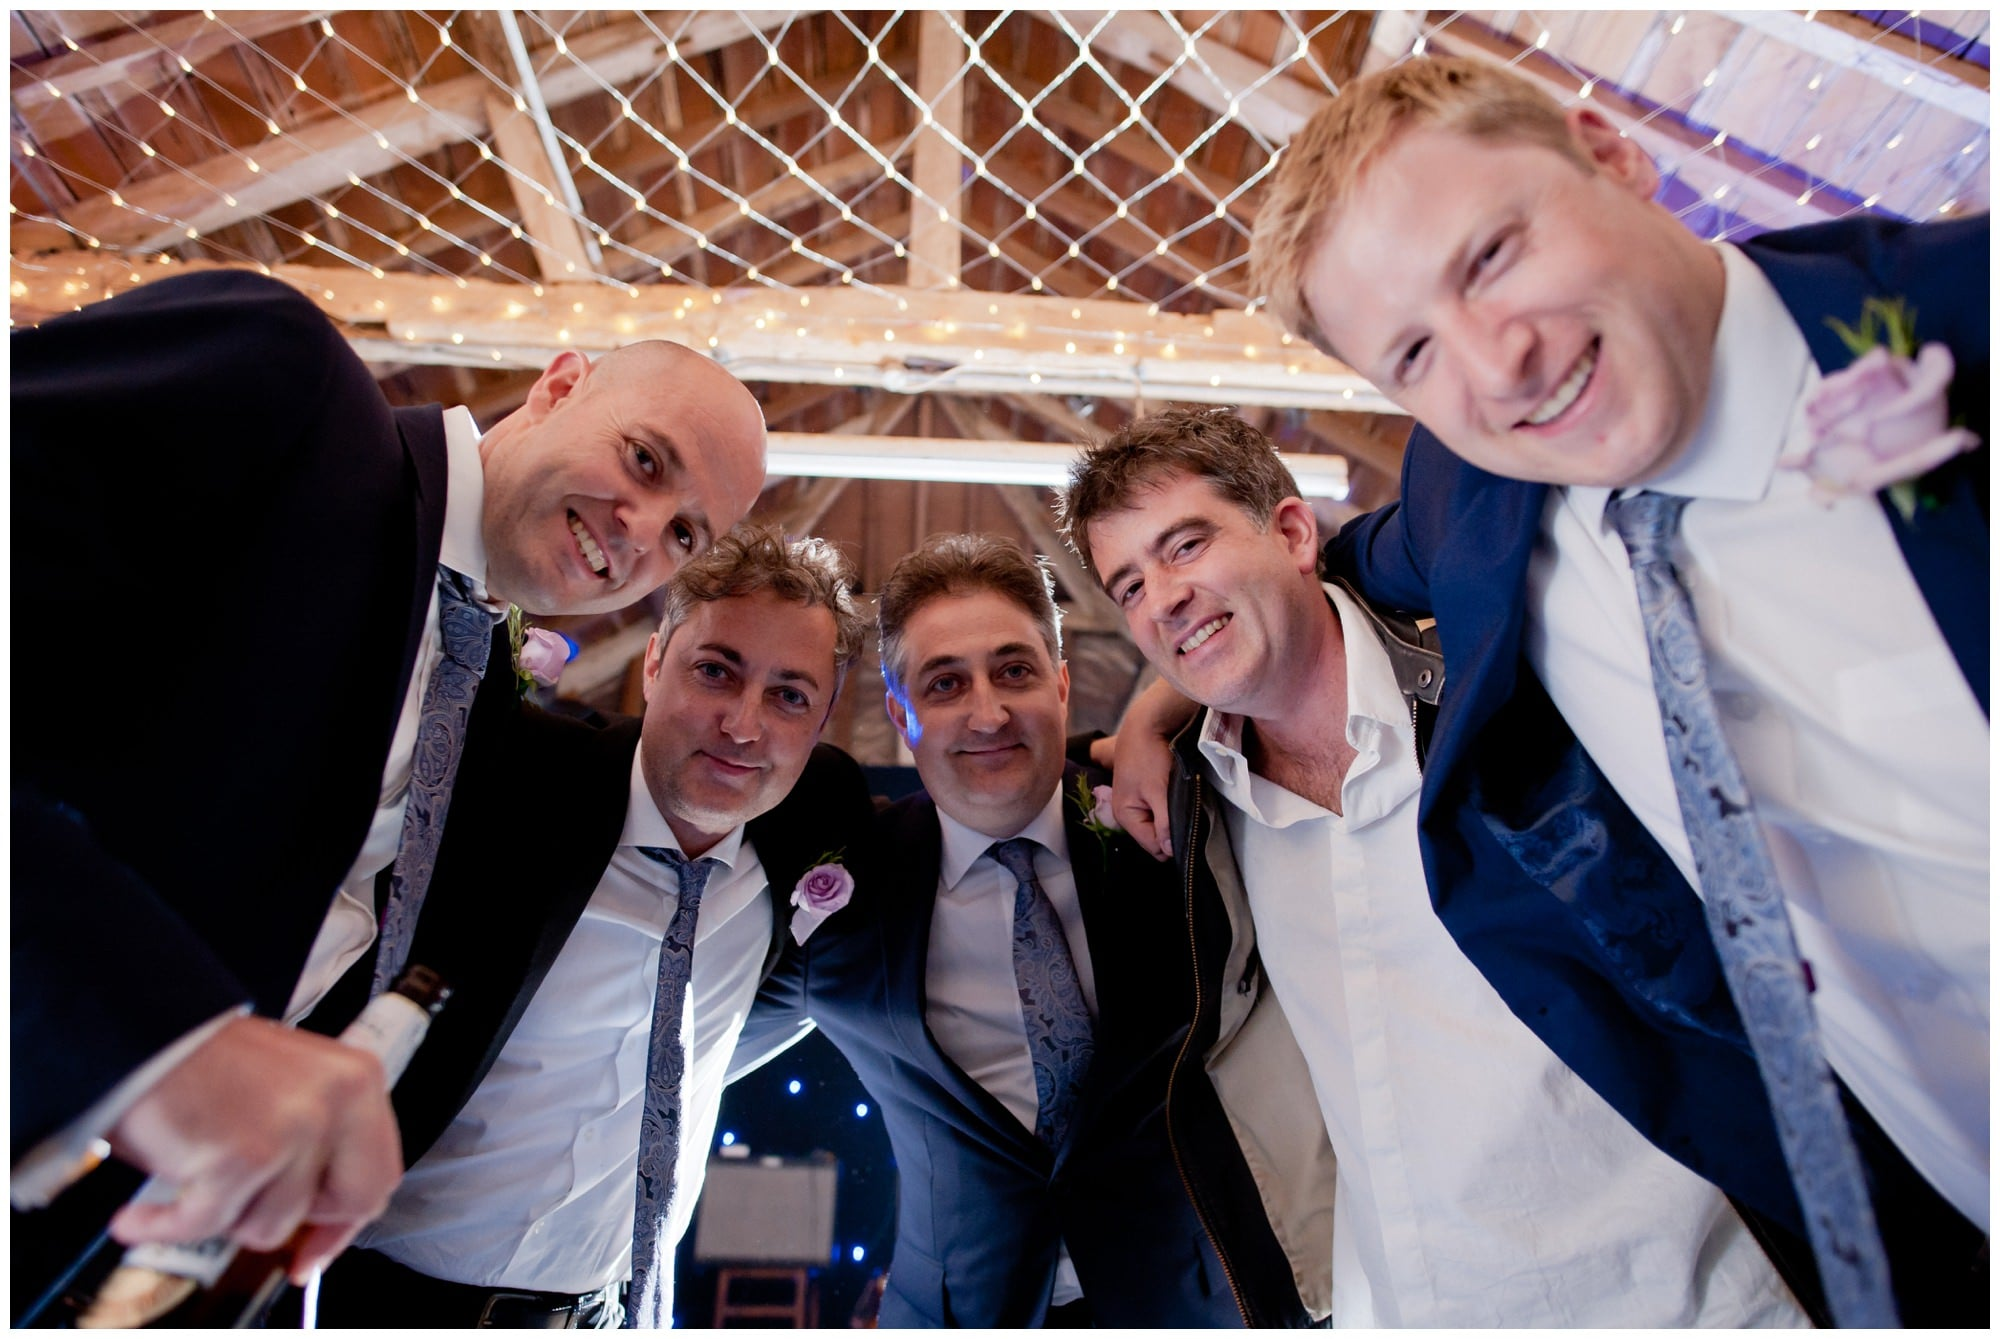 Photography of Groom's Band